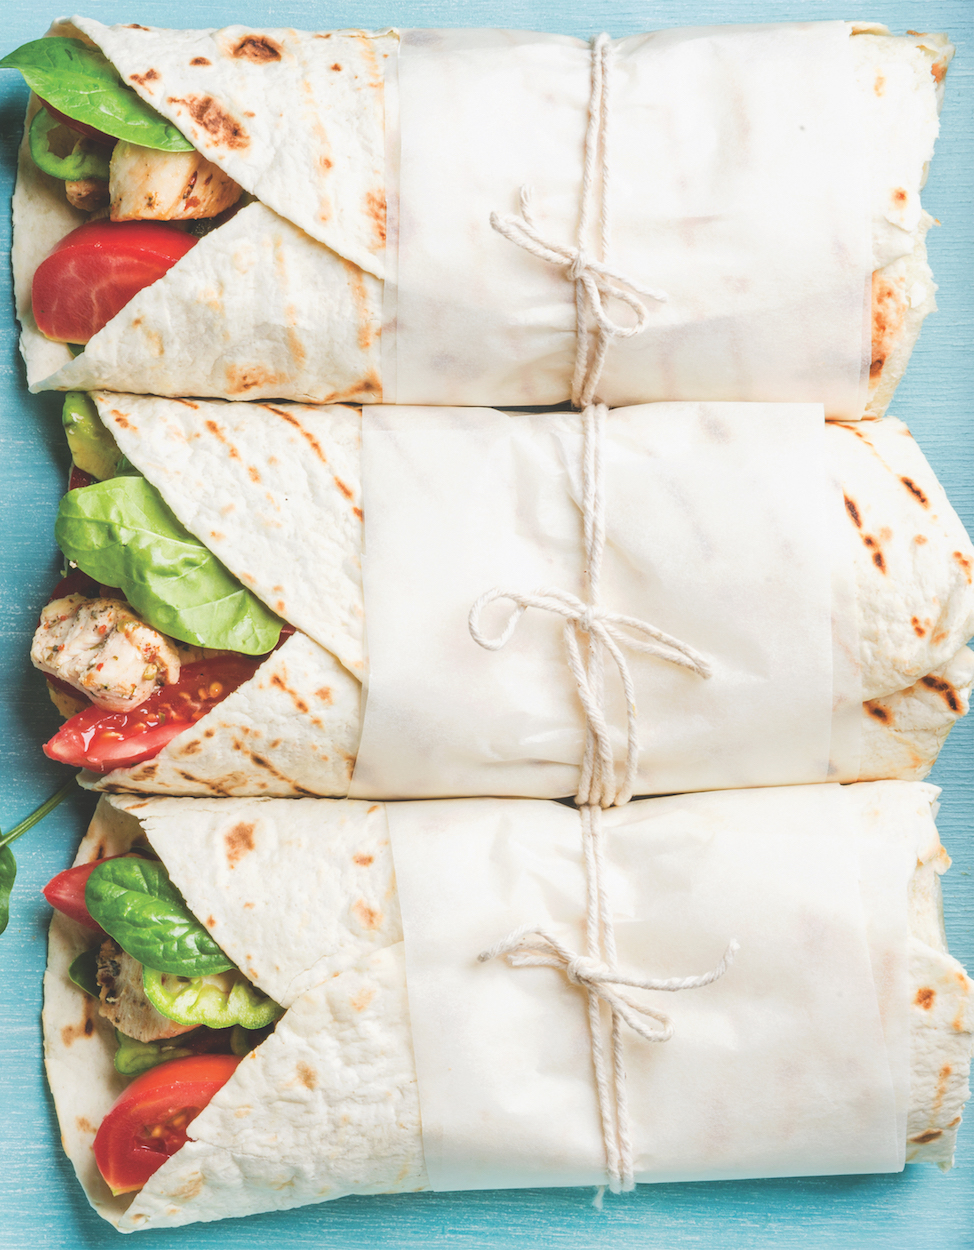 Fresh Strawberries and Marinated Chicken Salad Wraps